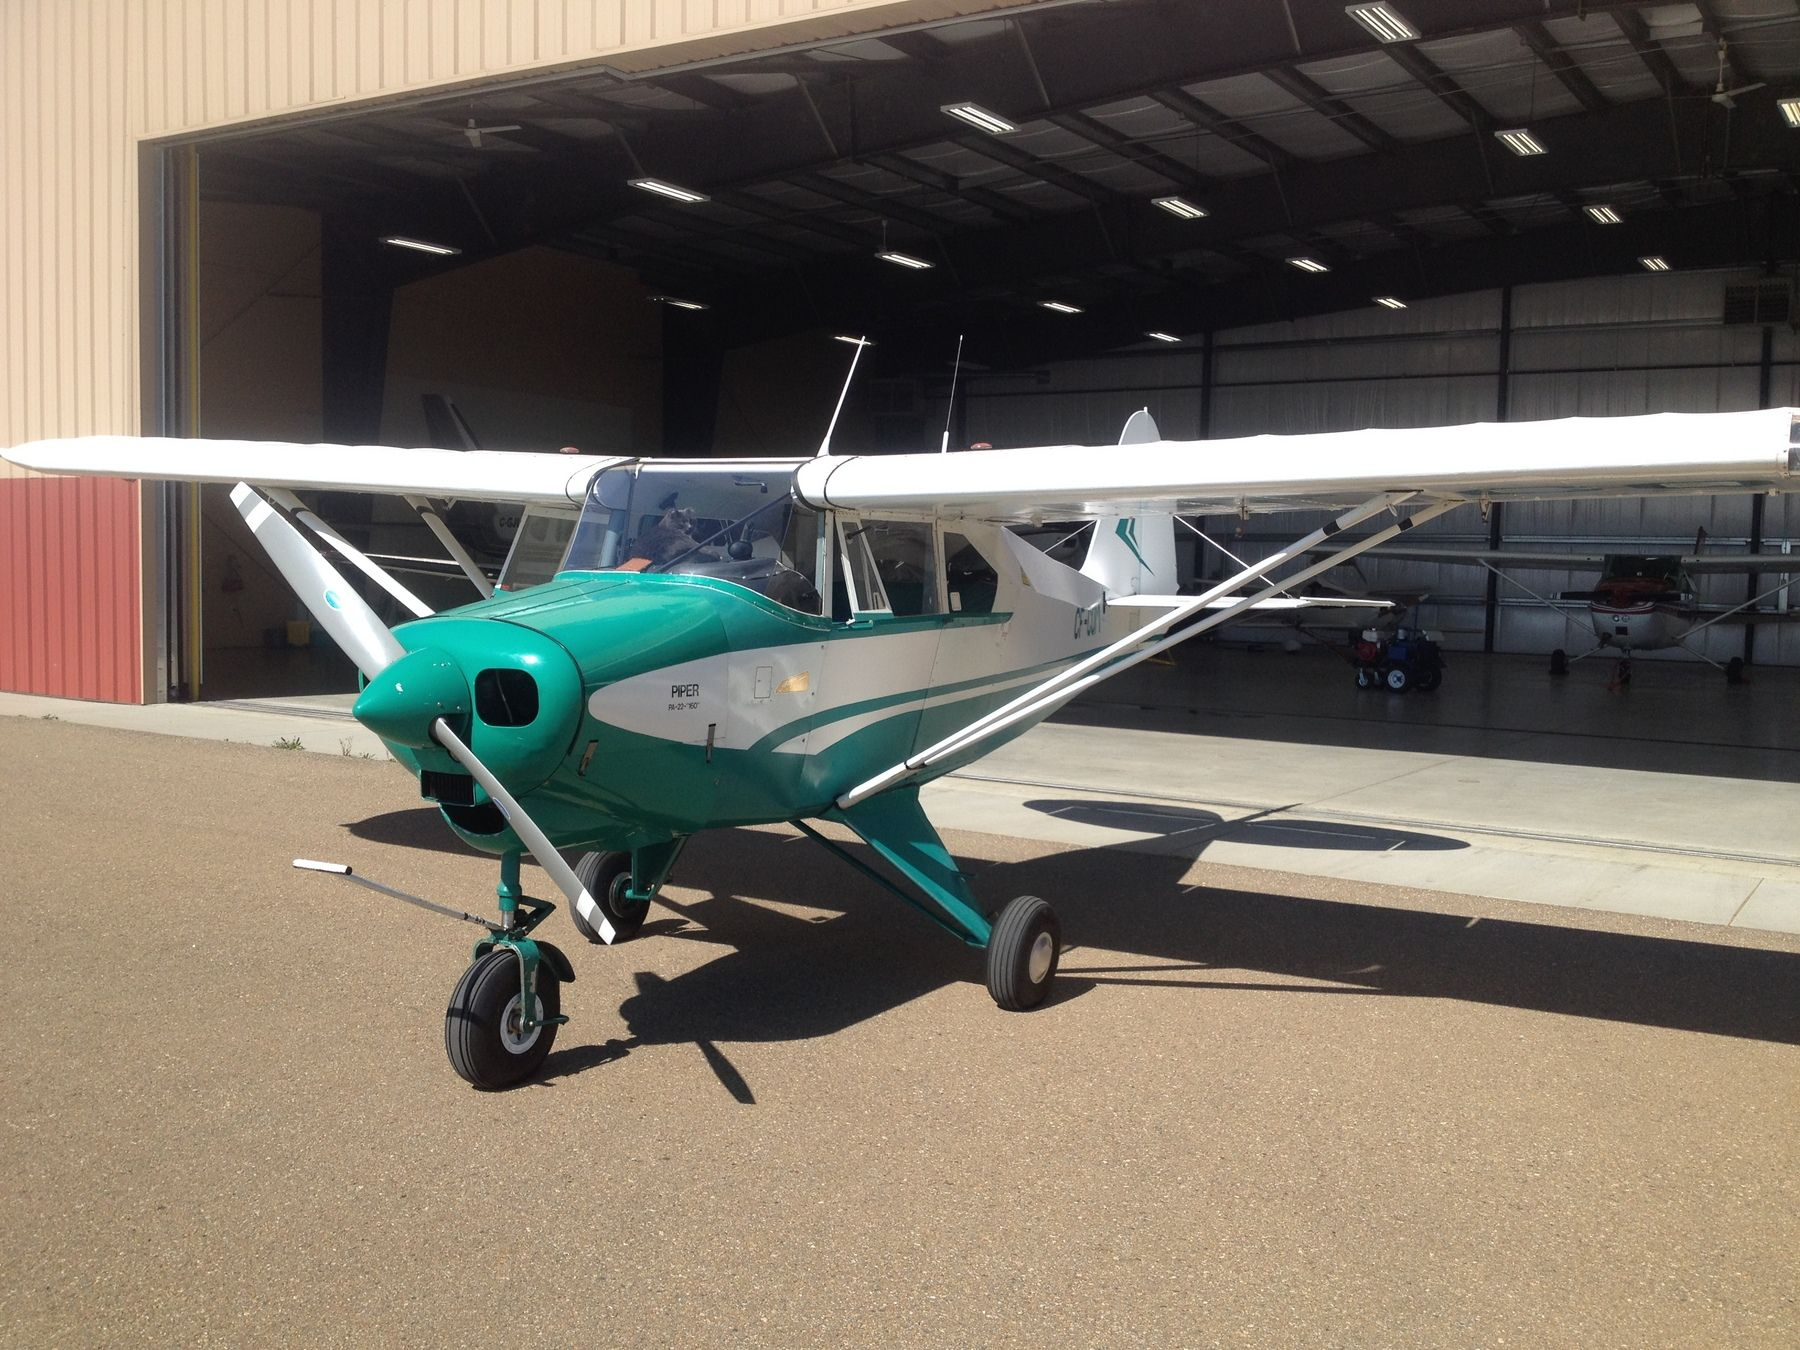 1959 Piper PA-22-160 Tri-Pacer 160HP for sale in (CYLL